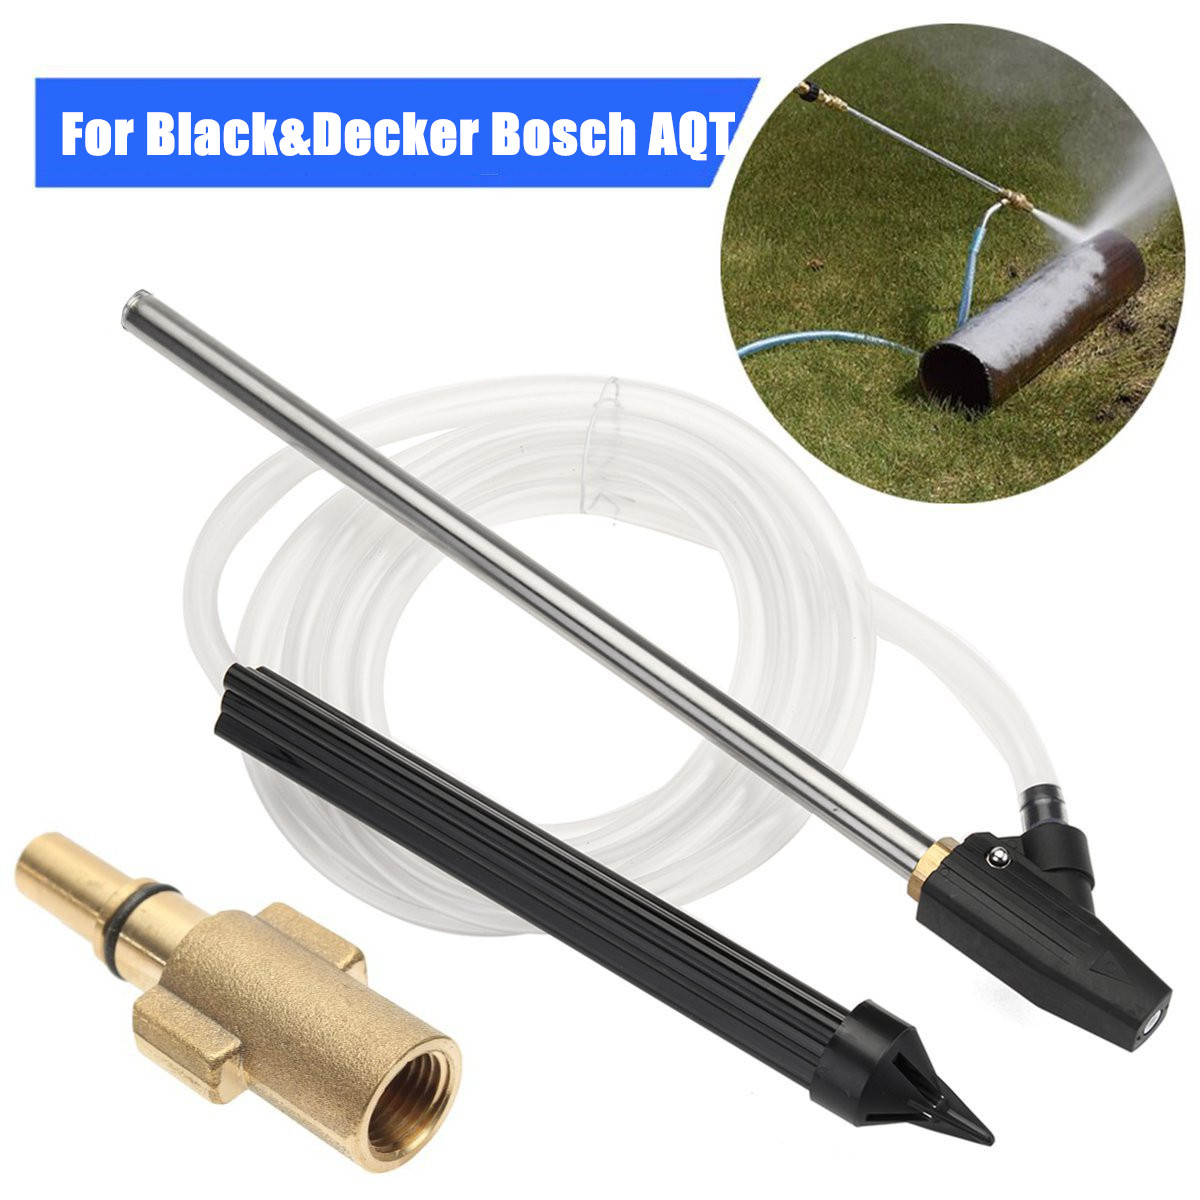 "High Pressure Washer Sand Wet Blaster Blank&Decker Sand blasting Kit +For BOSCH AQT Black and Decker Foam Lance Adapter 1/4"" Male"